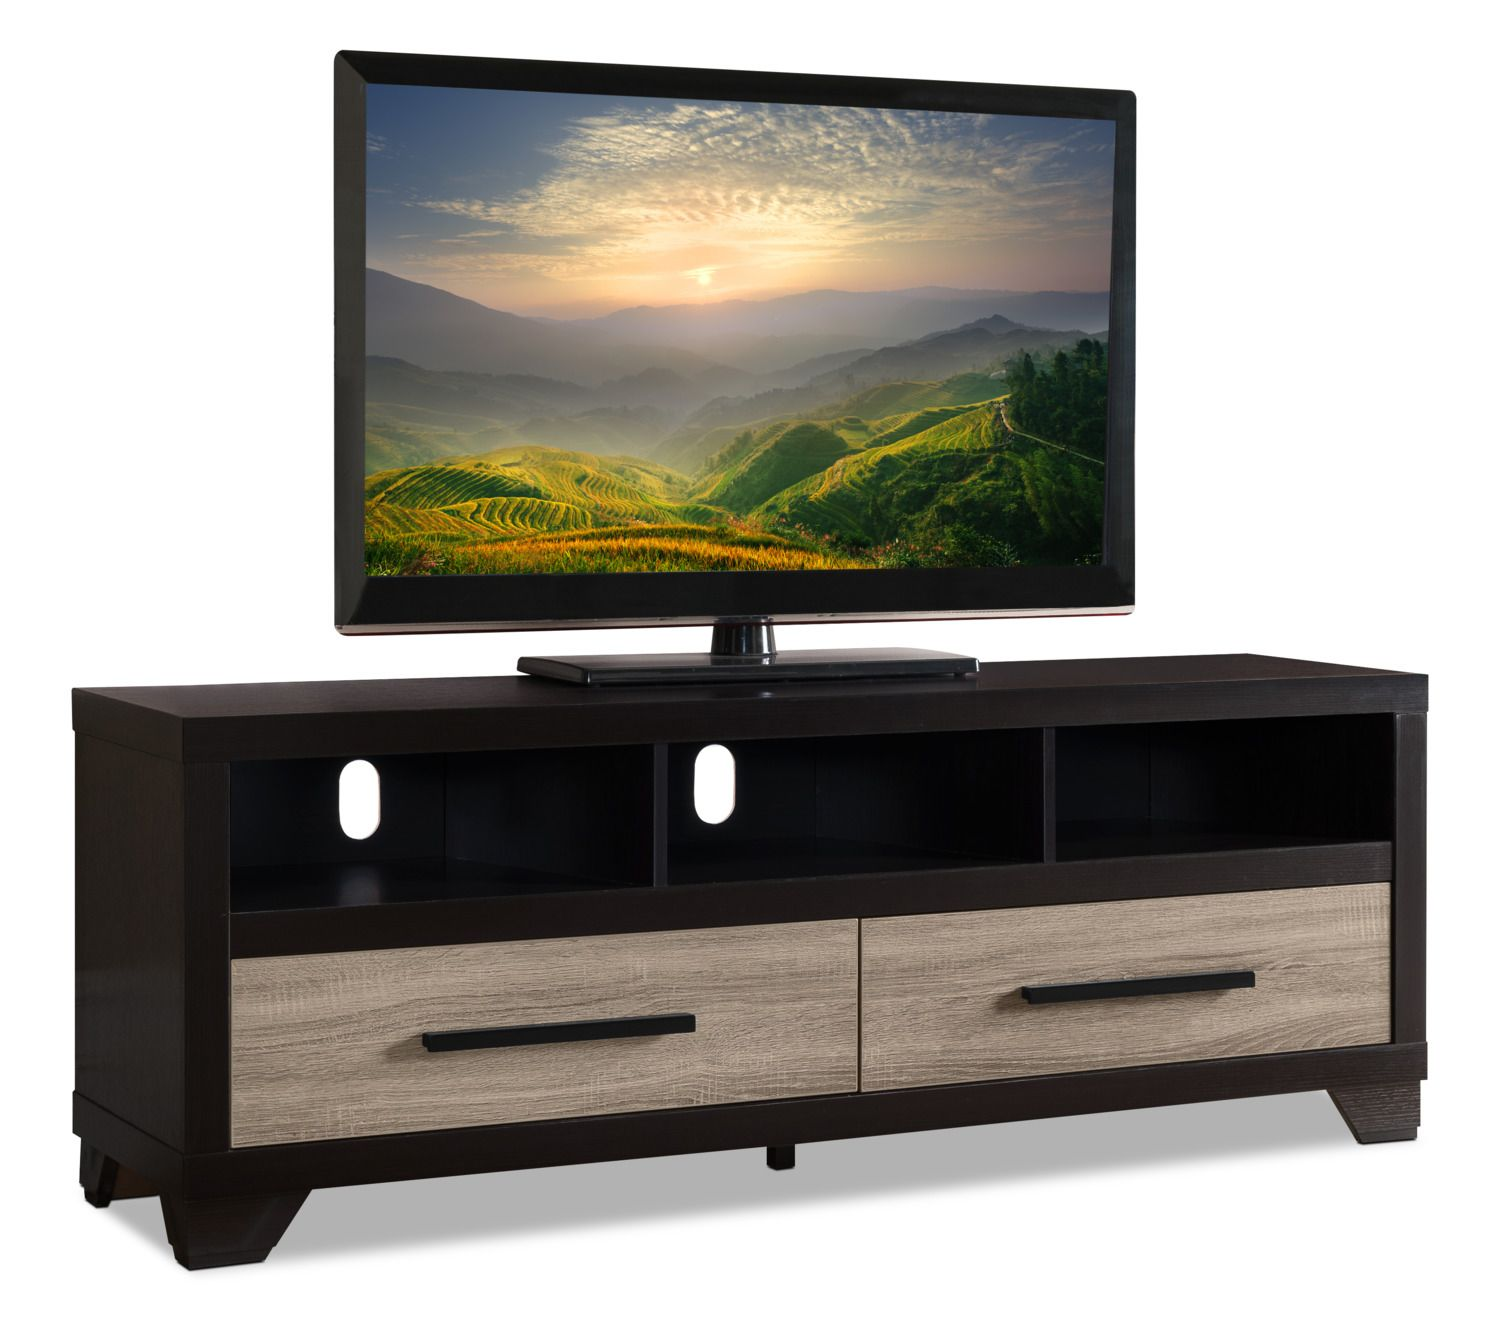 Find A Home For Your Big Screen Television On This Glendale 60 Inch Tv Stand Open Shelving Provides The Perfect Spot Tv Stand 60 Inch Tv Stand Finding A House